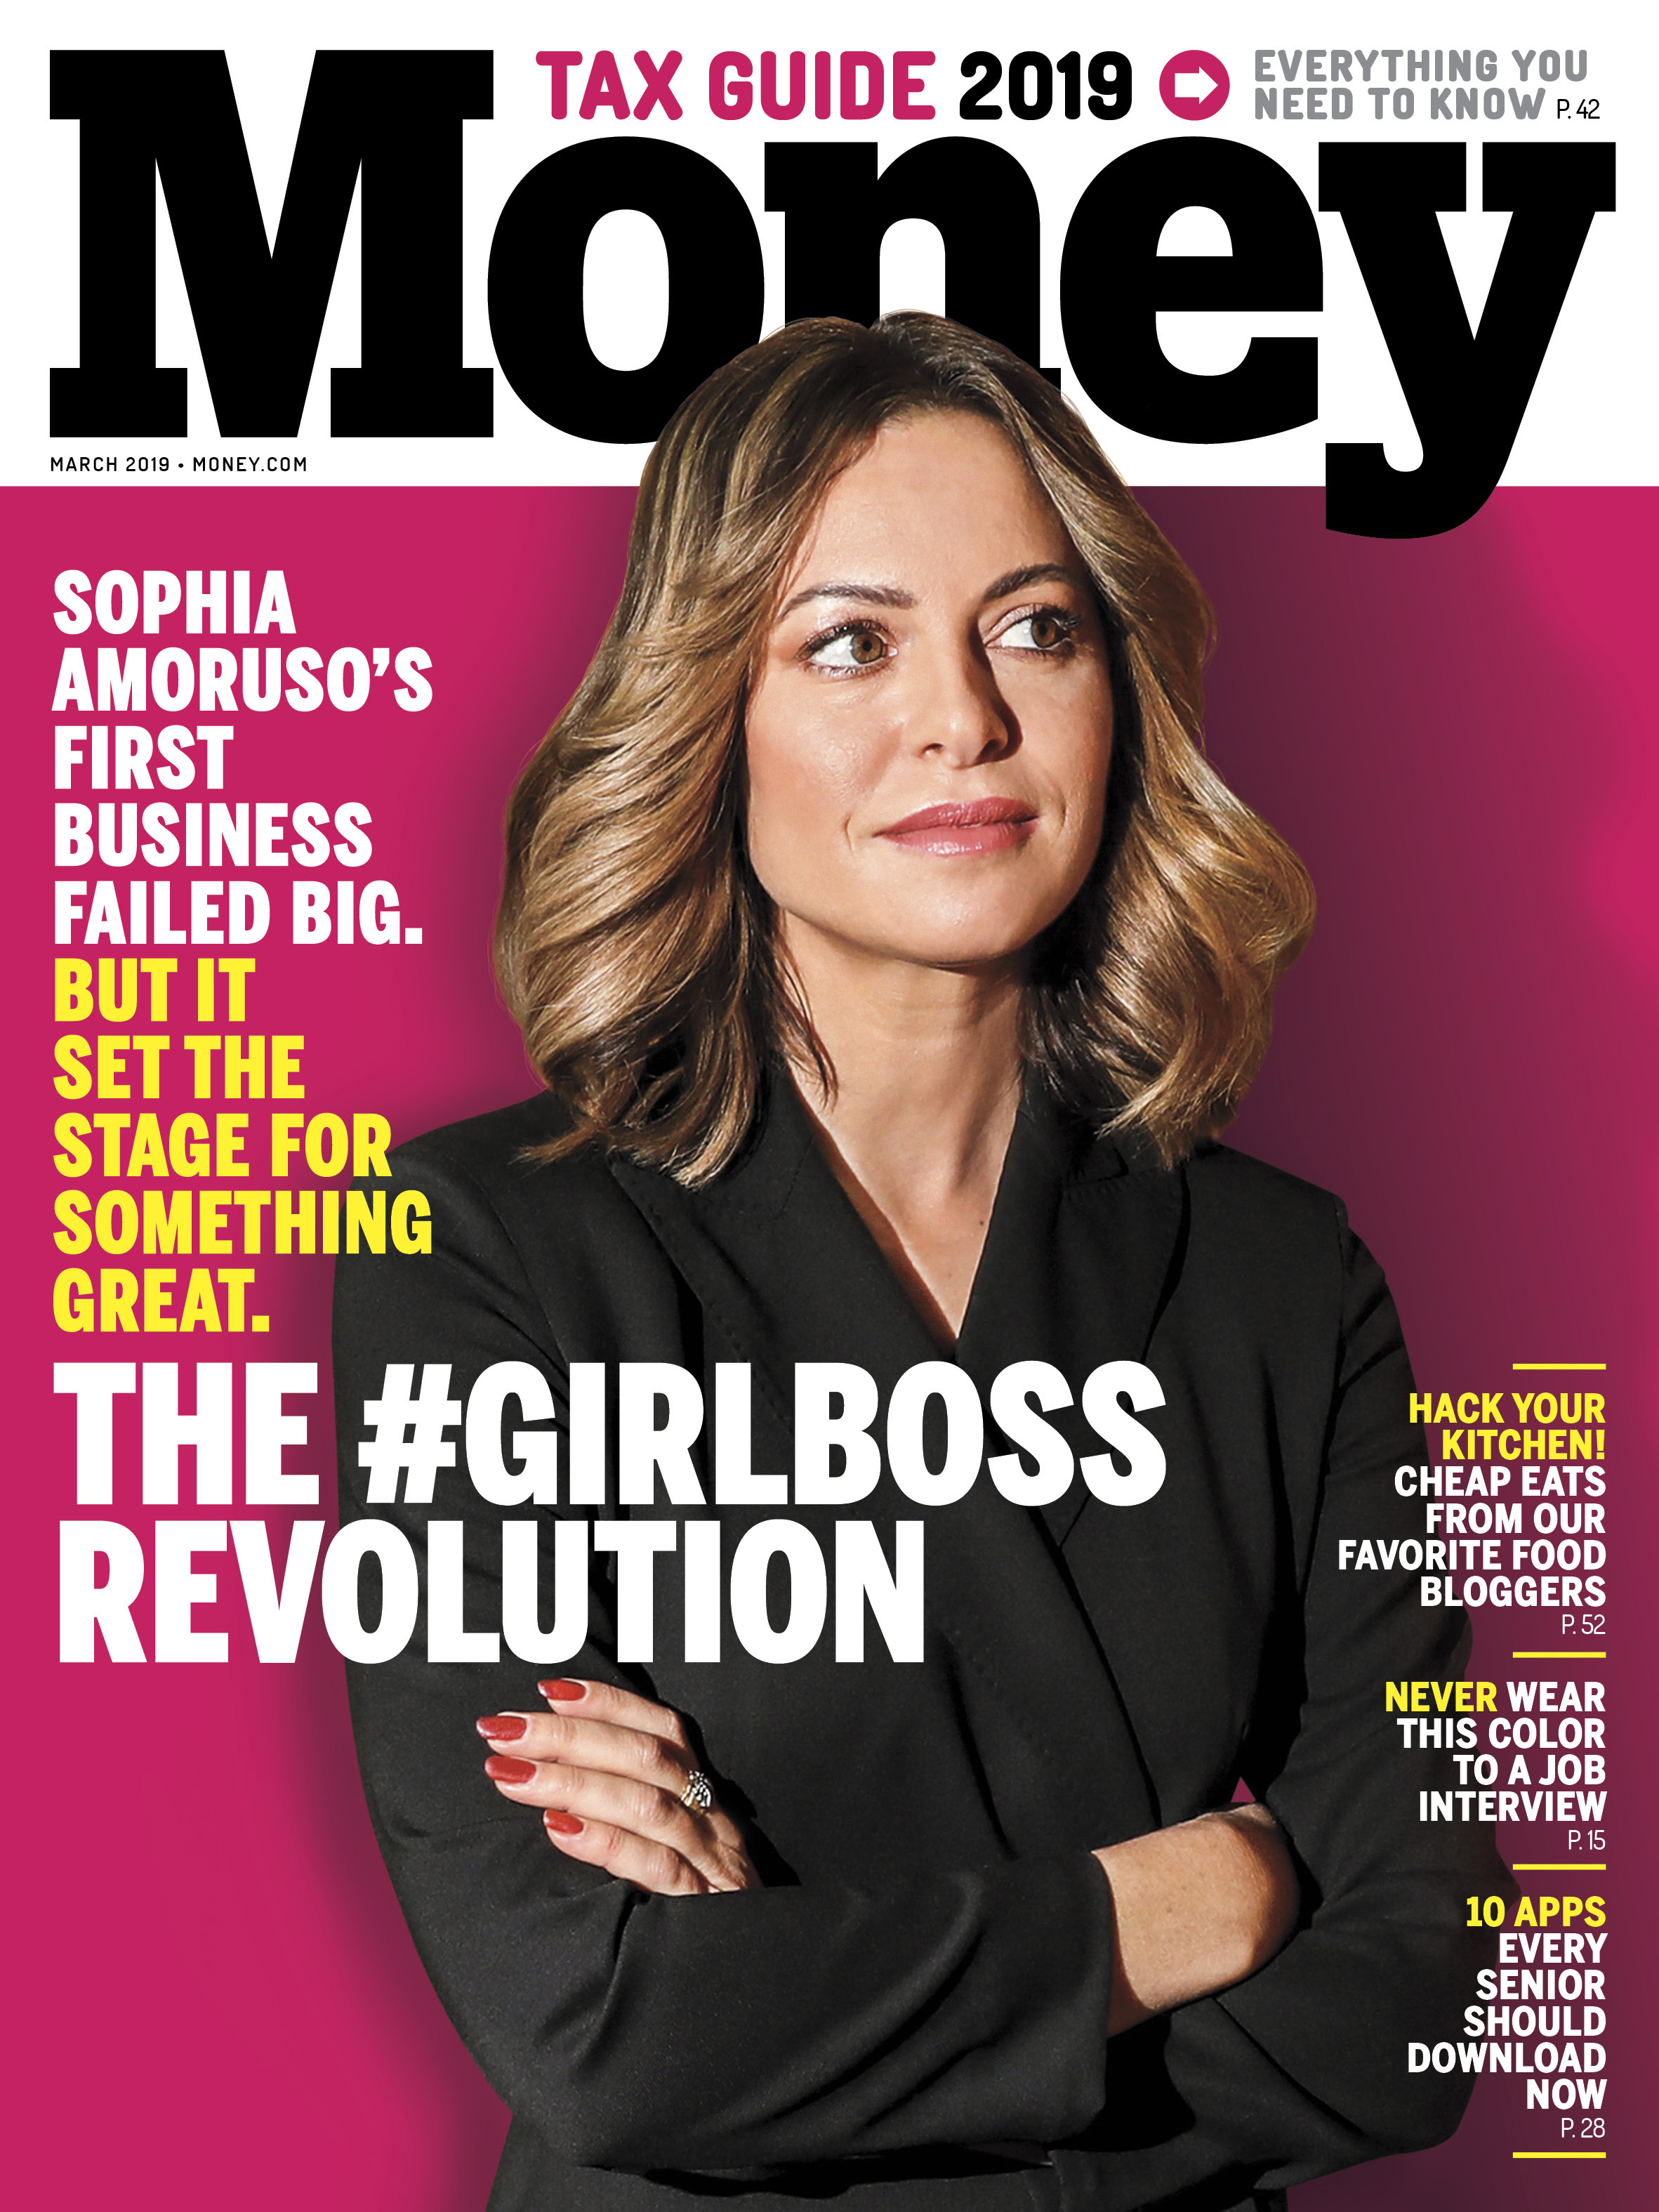 Sophia Amoruso Failed Spectacularly. Now She's Turning Failure Into A Movement